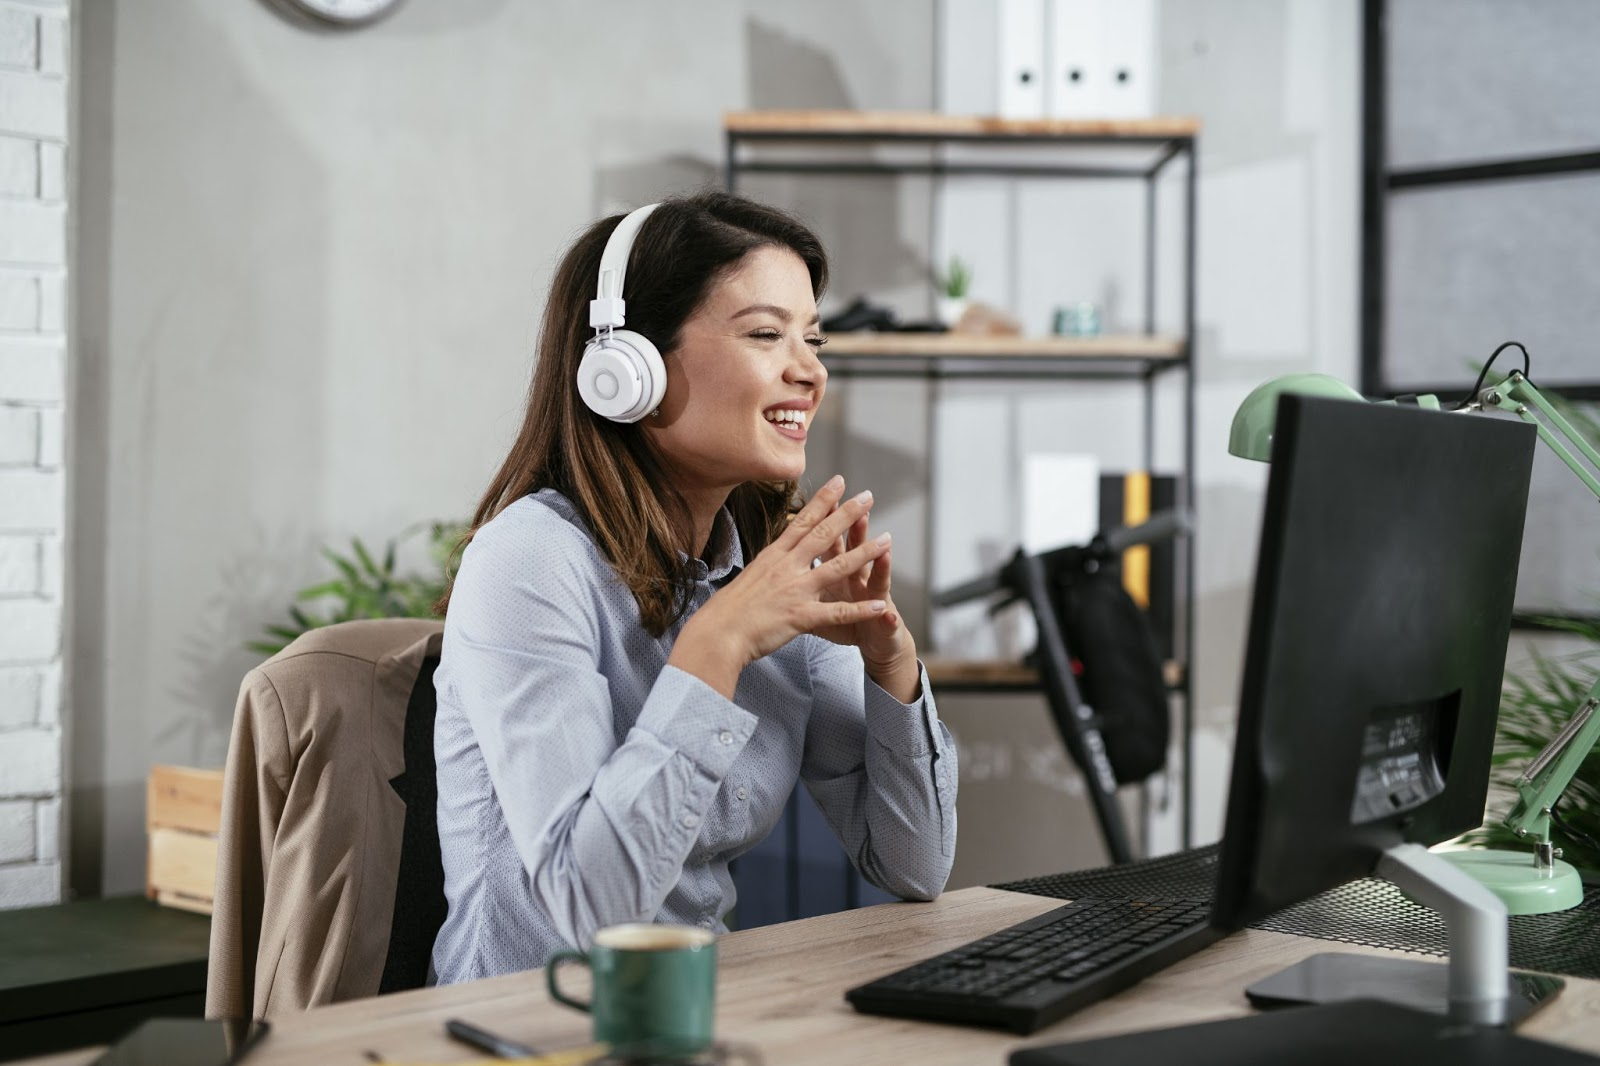 Smiling woman wearing headphones while in front of her computer